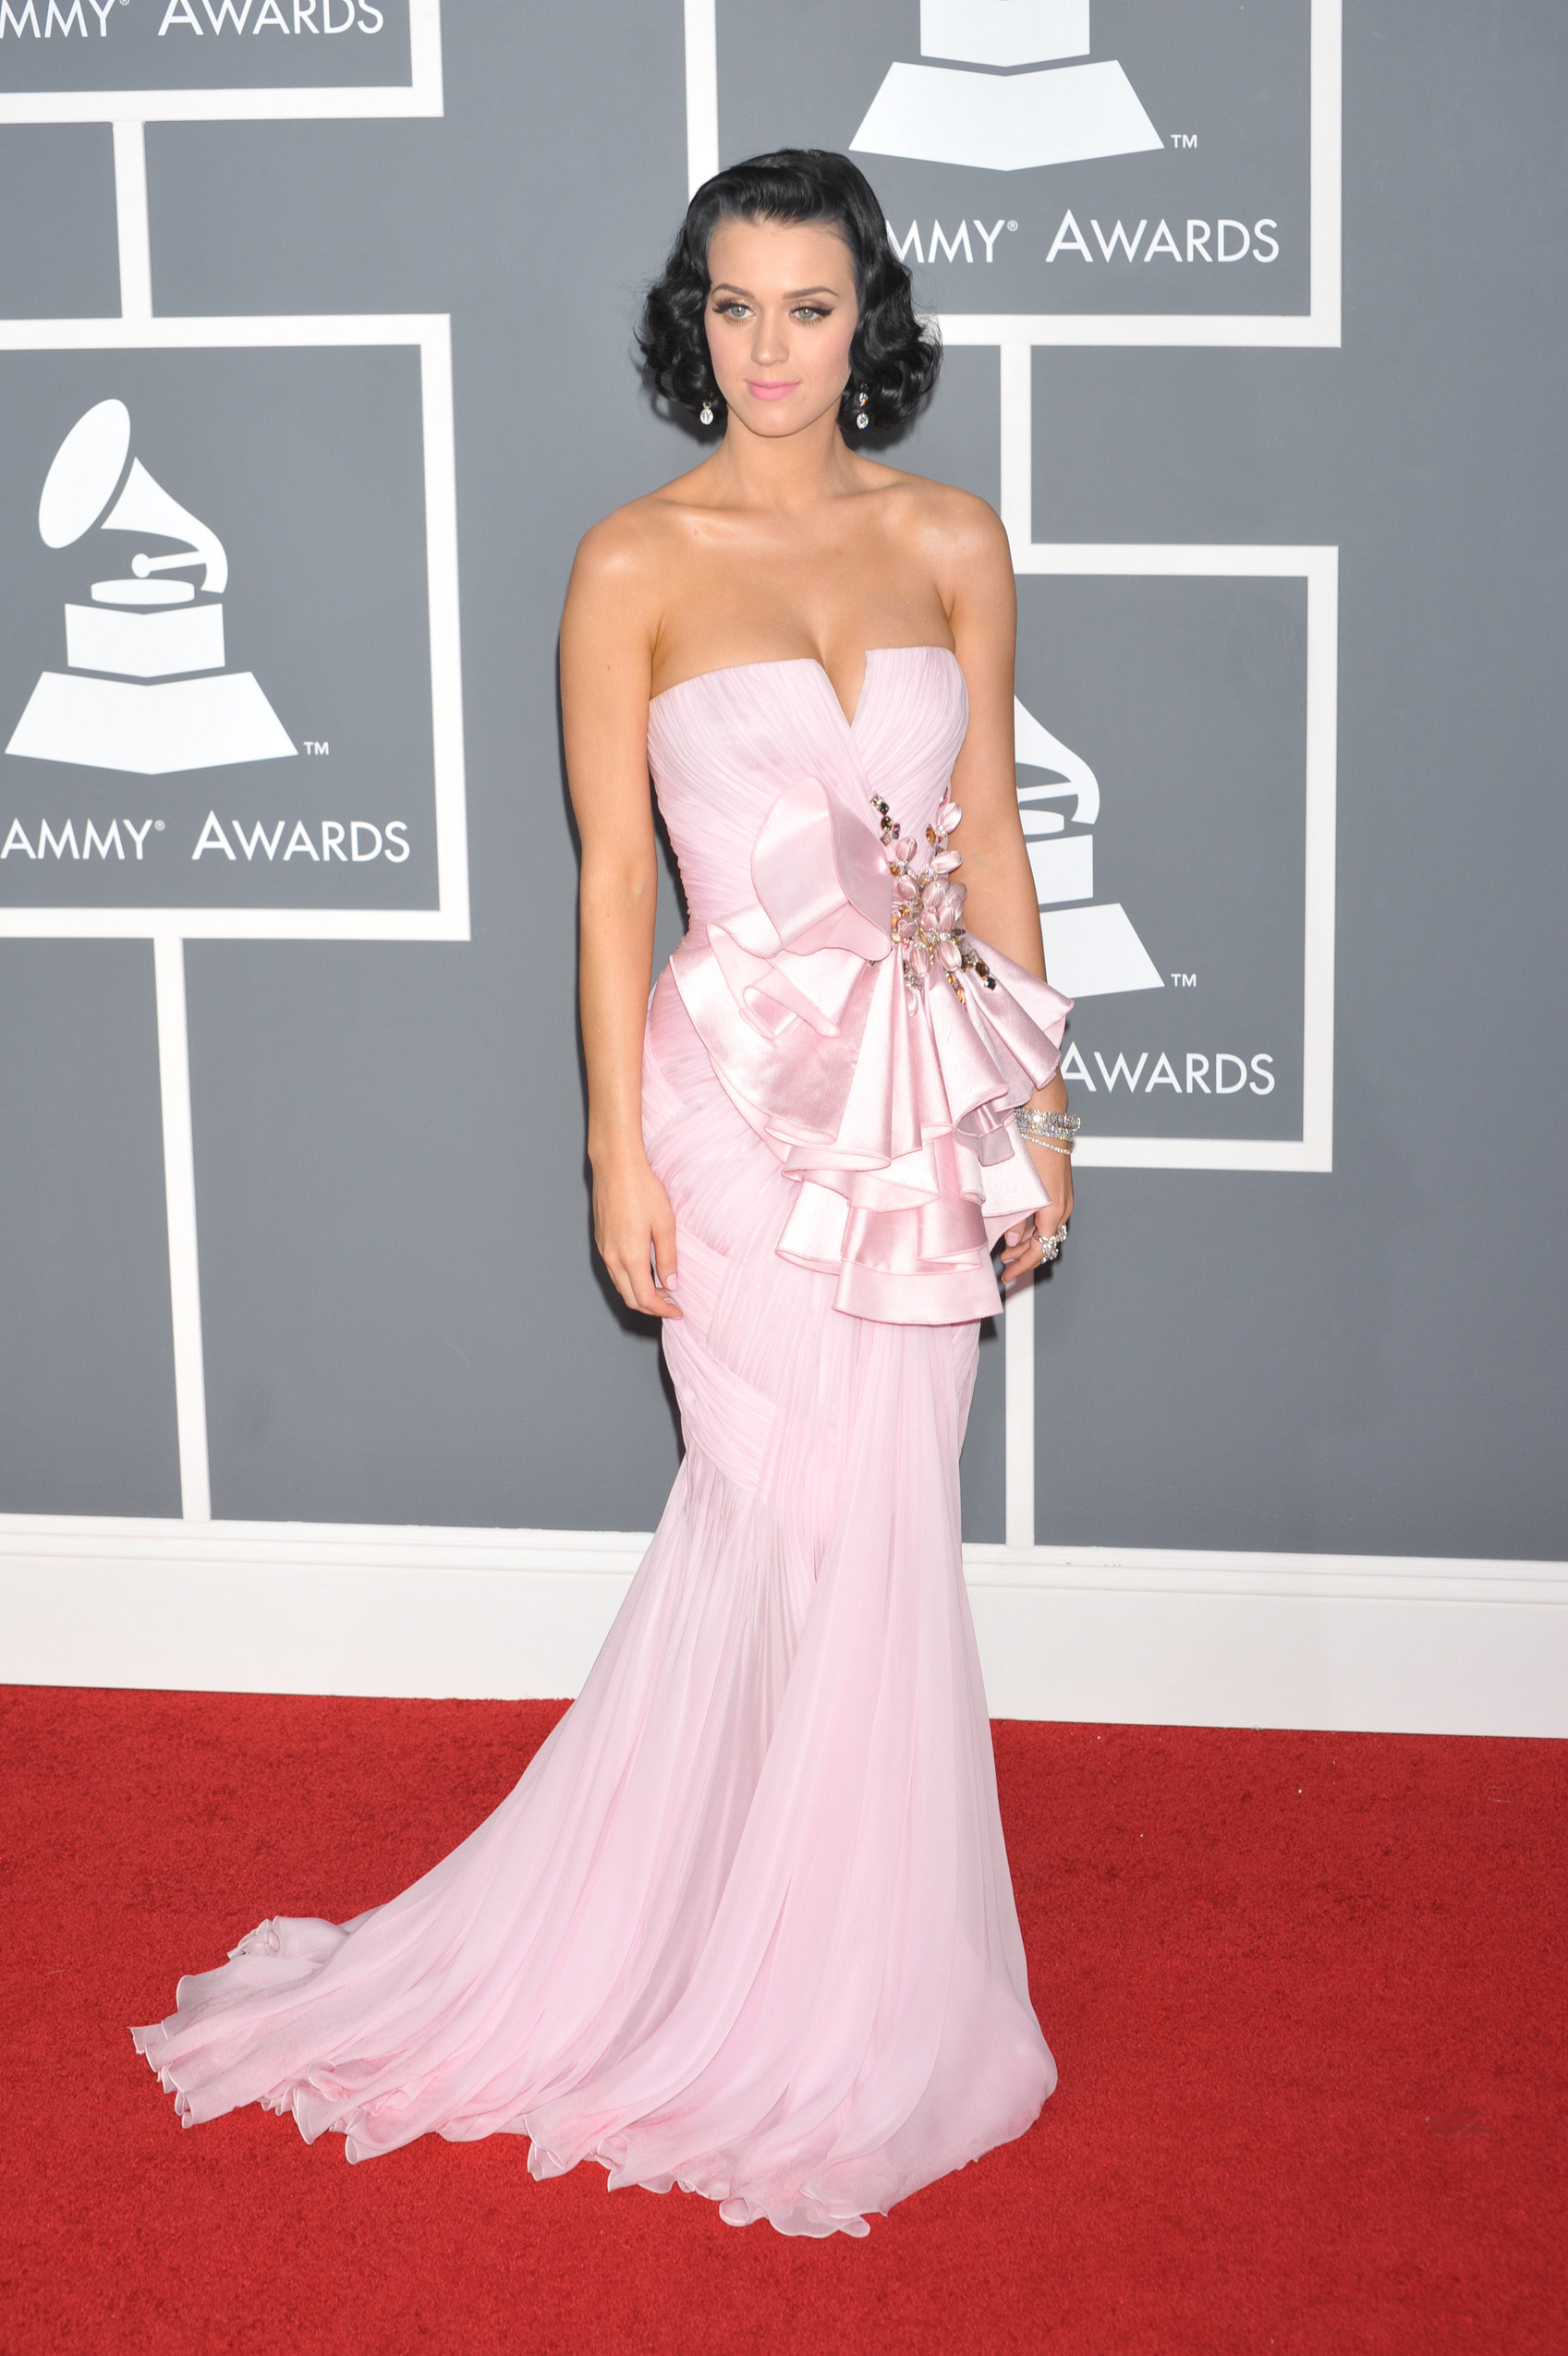 14. Katy Perry in pink